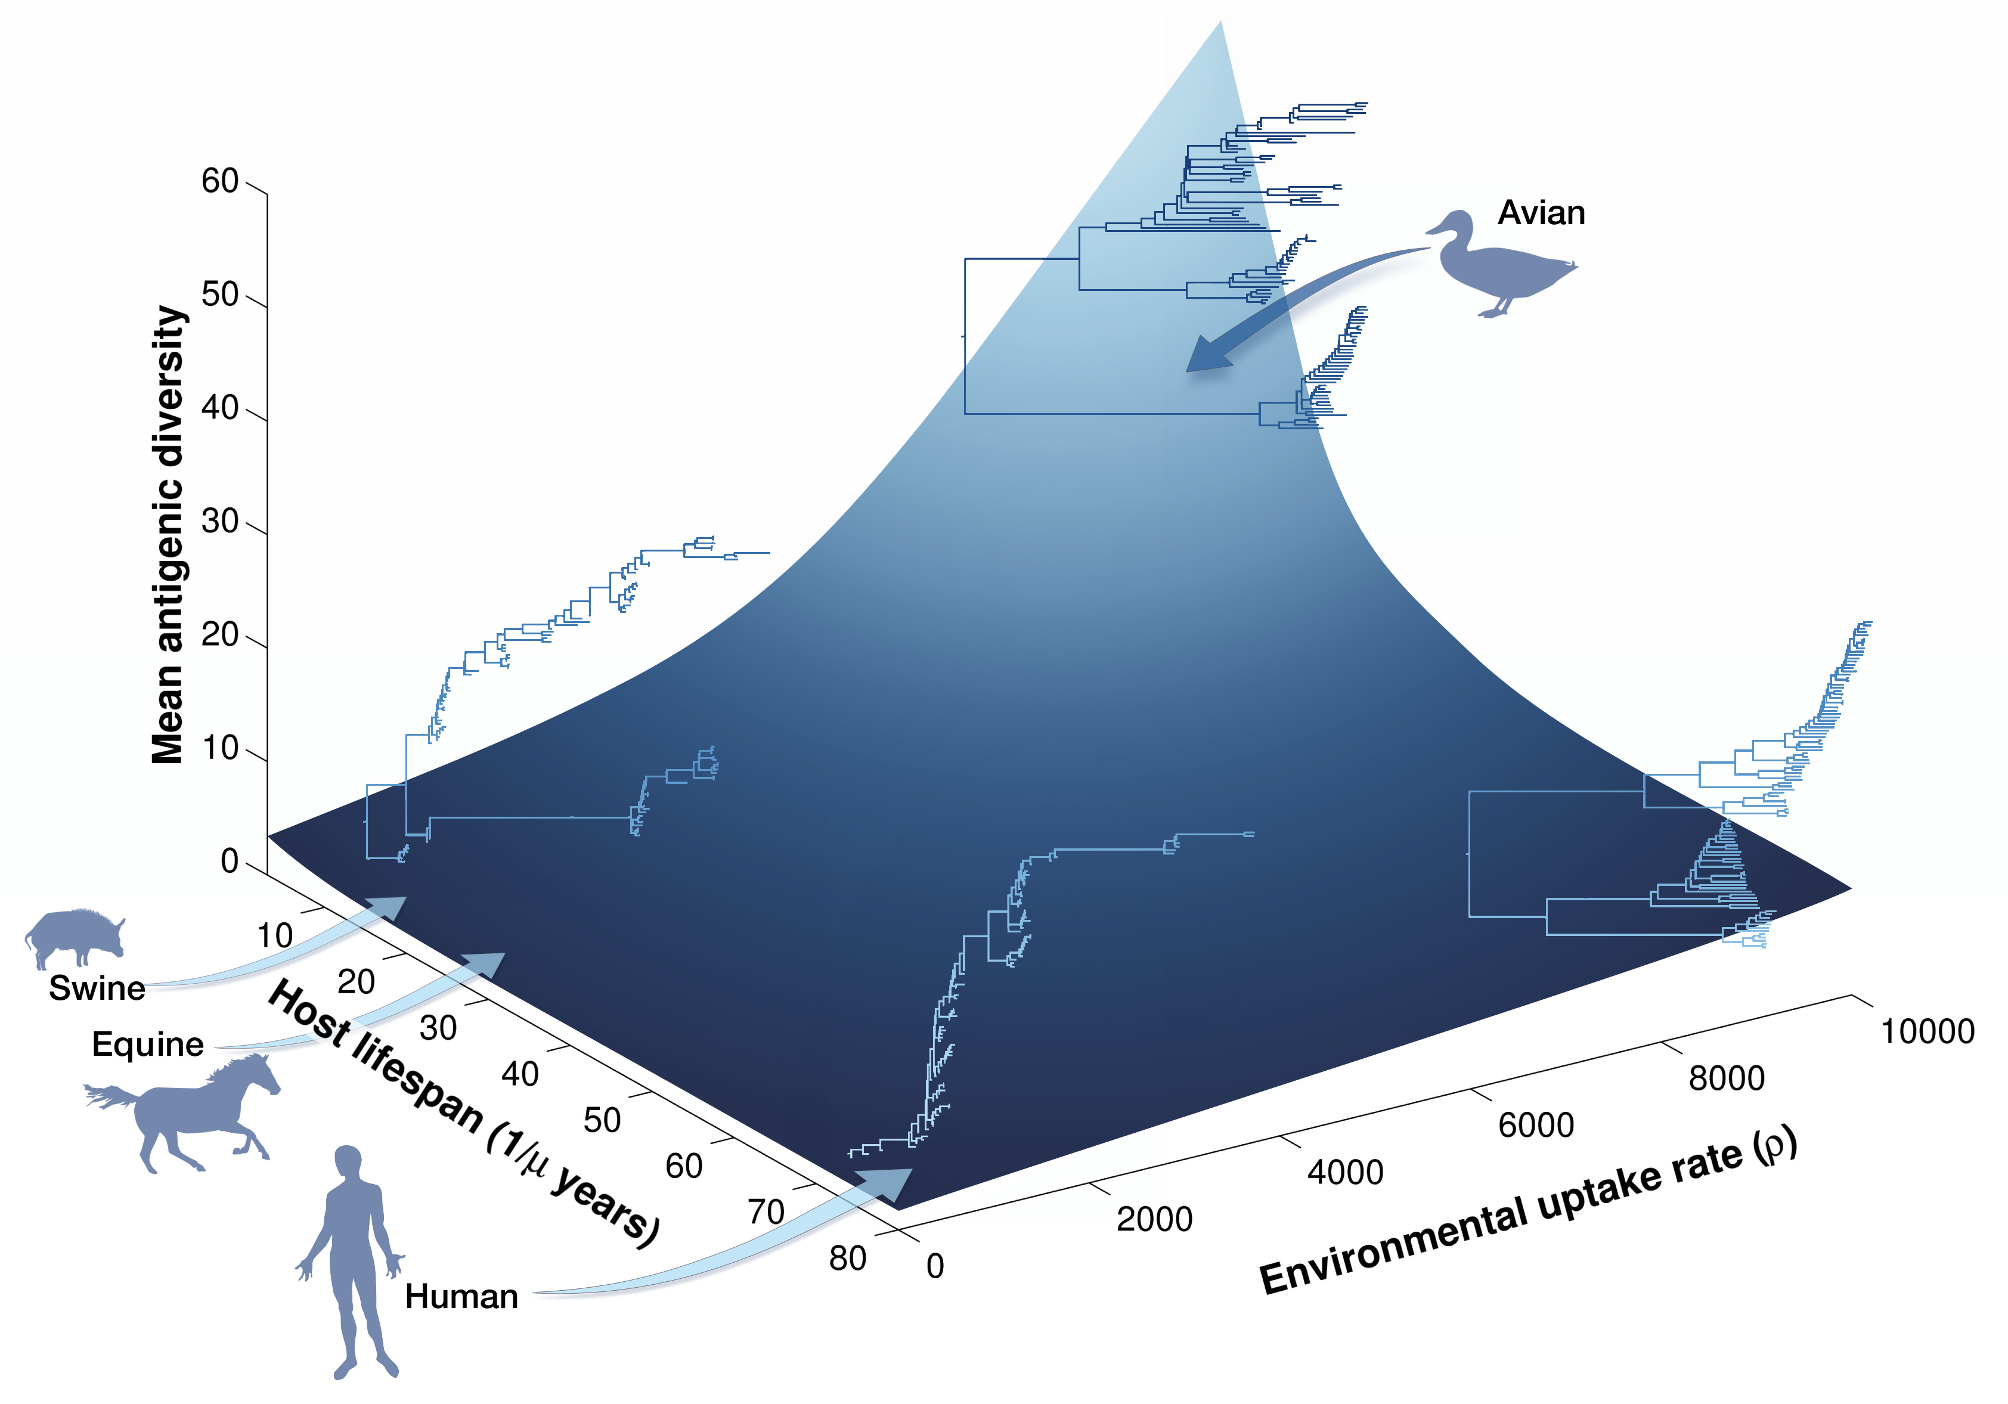 Genetic diversity of avian influenza virus is driven by host lifespan and environmental transmission. Image credit: Roche, B., J.M. Drake, J. Brown, D. Stallknecht, T. Bedford & P. Rohani. 2014. Adaptive evolution and environmental durability jointly structure phylodynamic patterns in avian influenza viruses. PLOS Biology 12:e1001931.